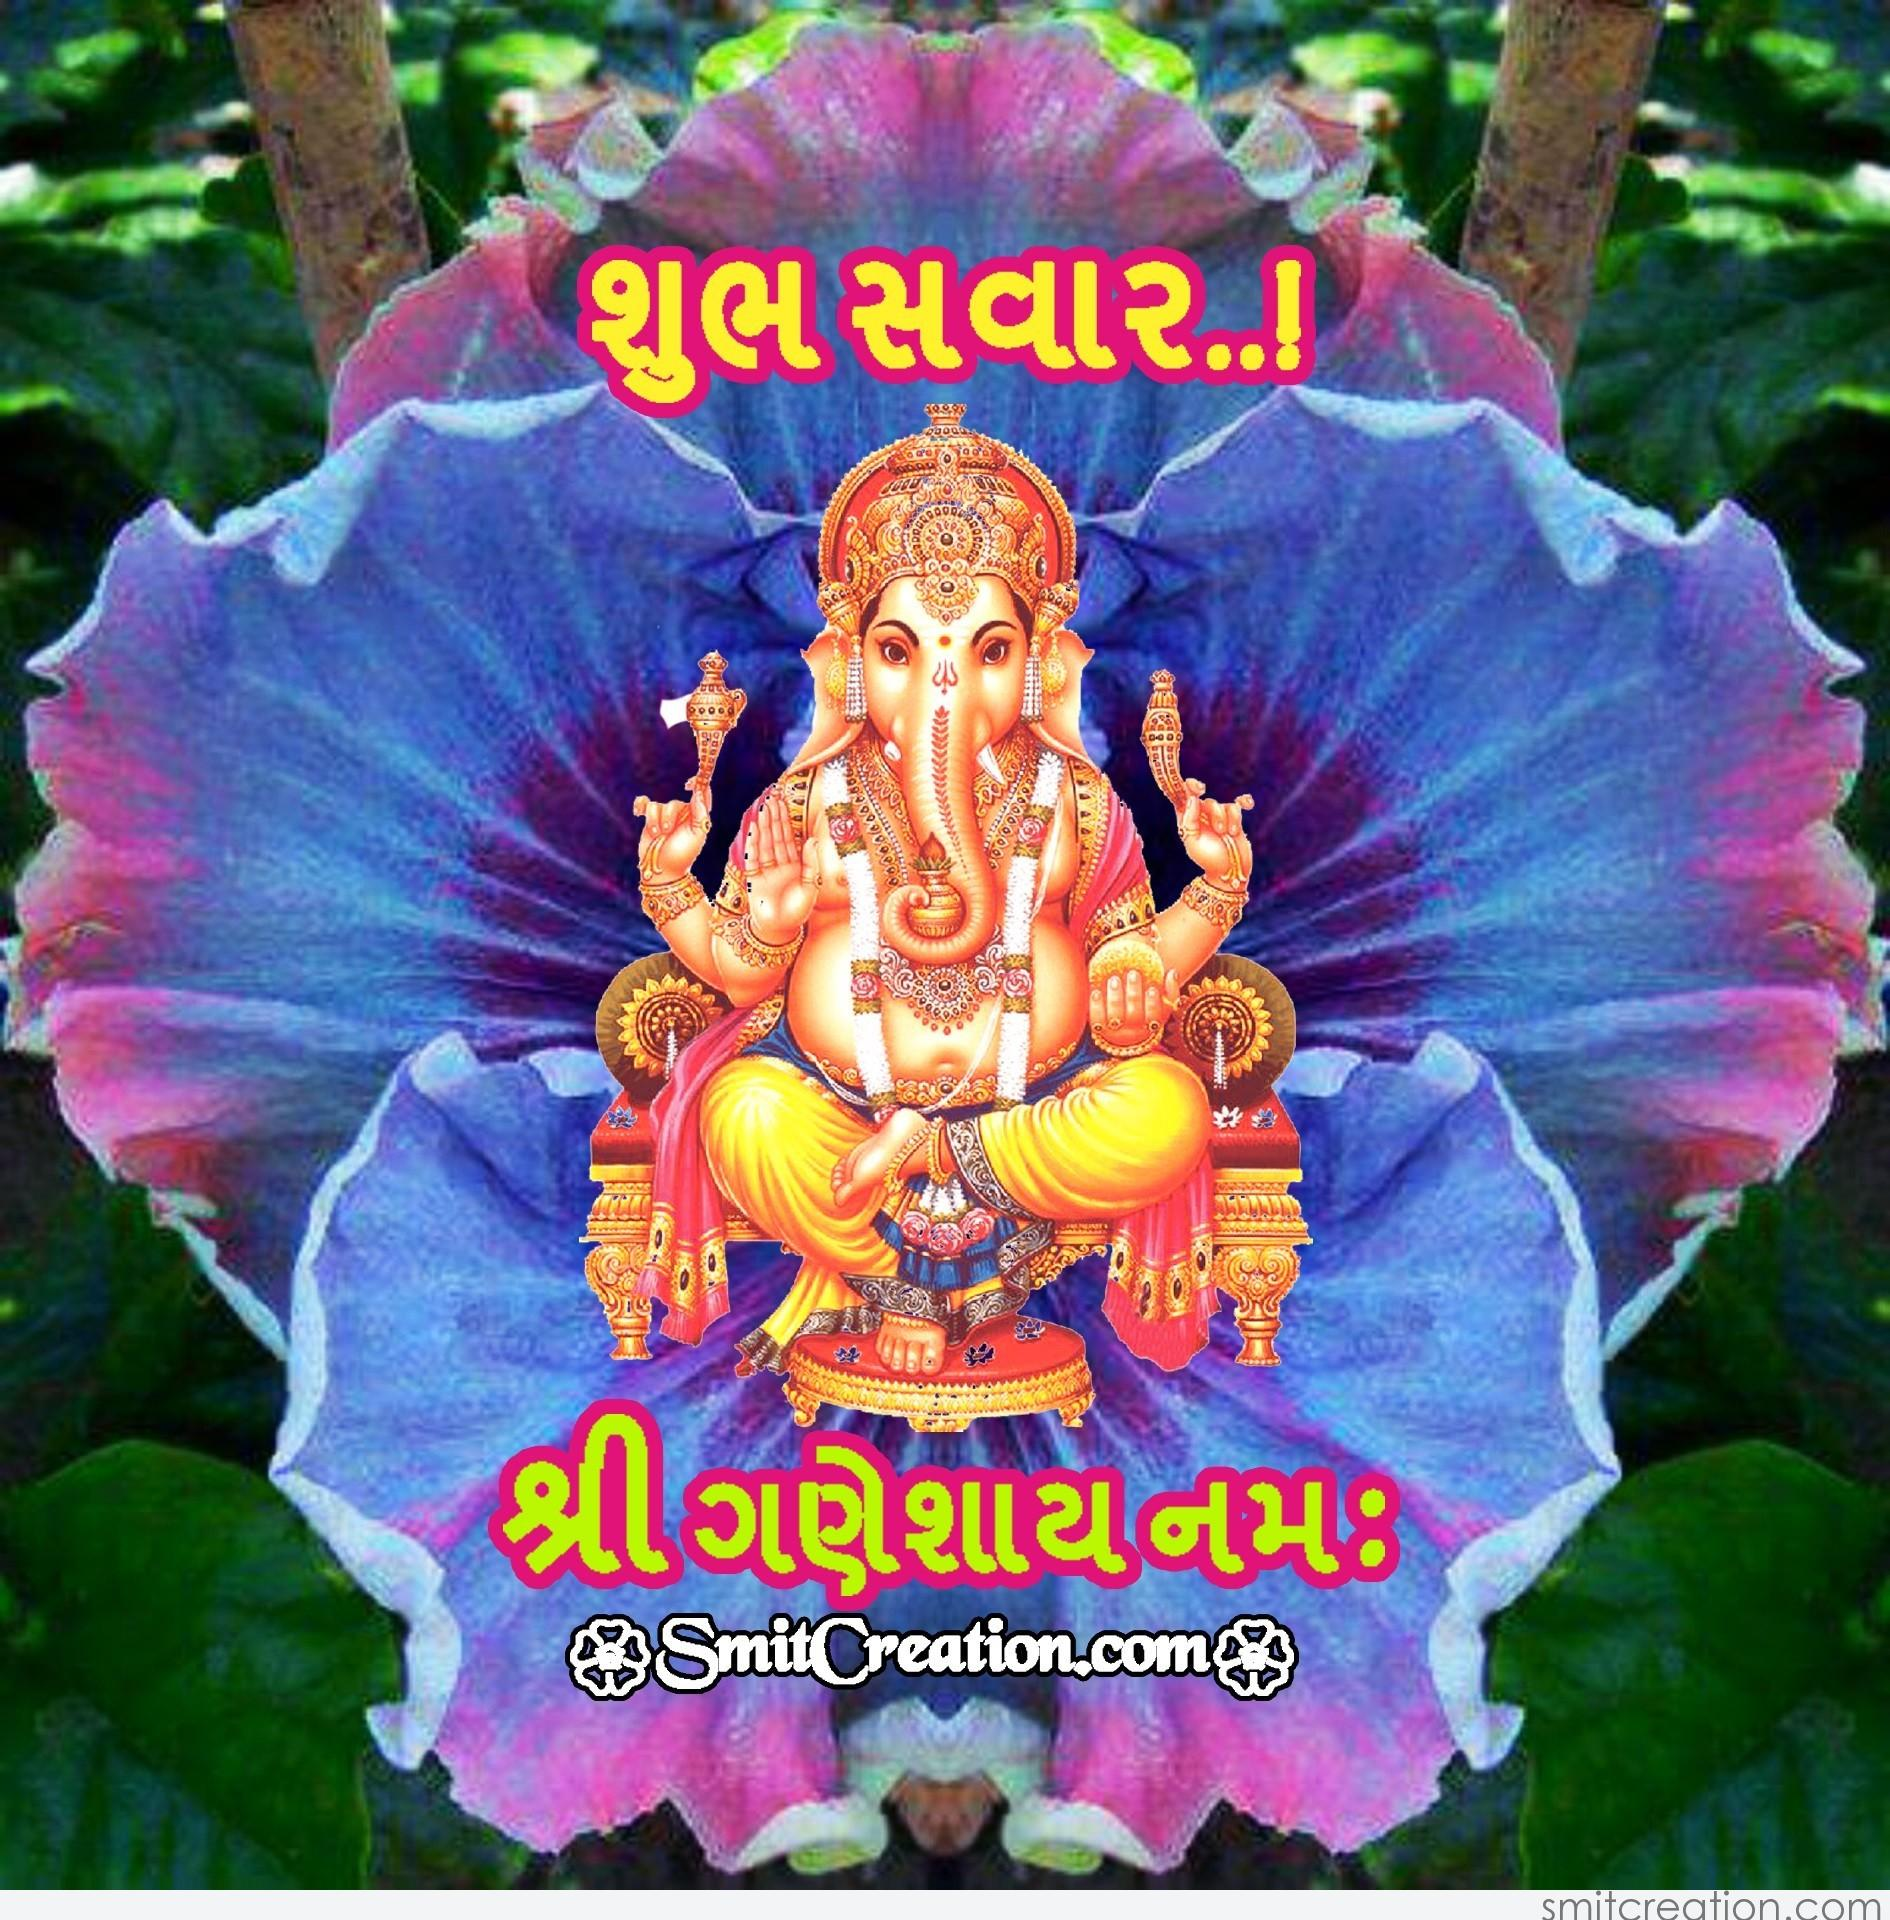 Latest Top Shubh Savar Mitro wishes for free download